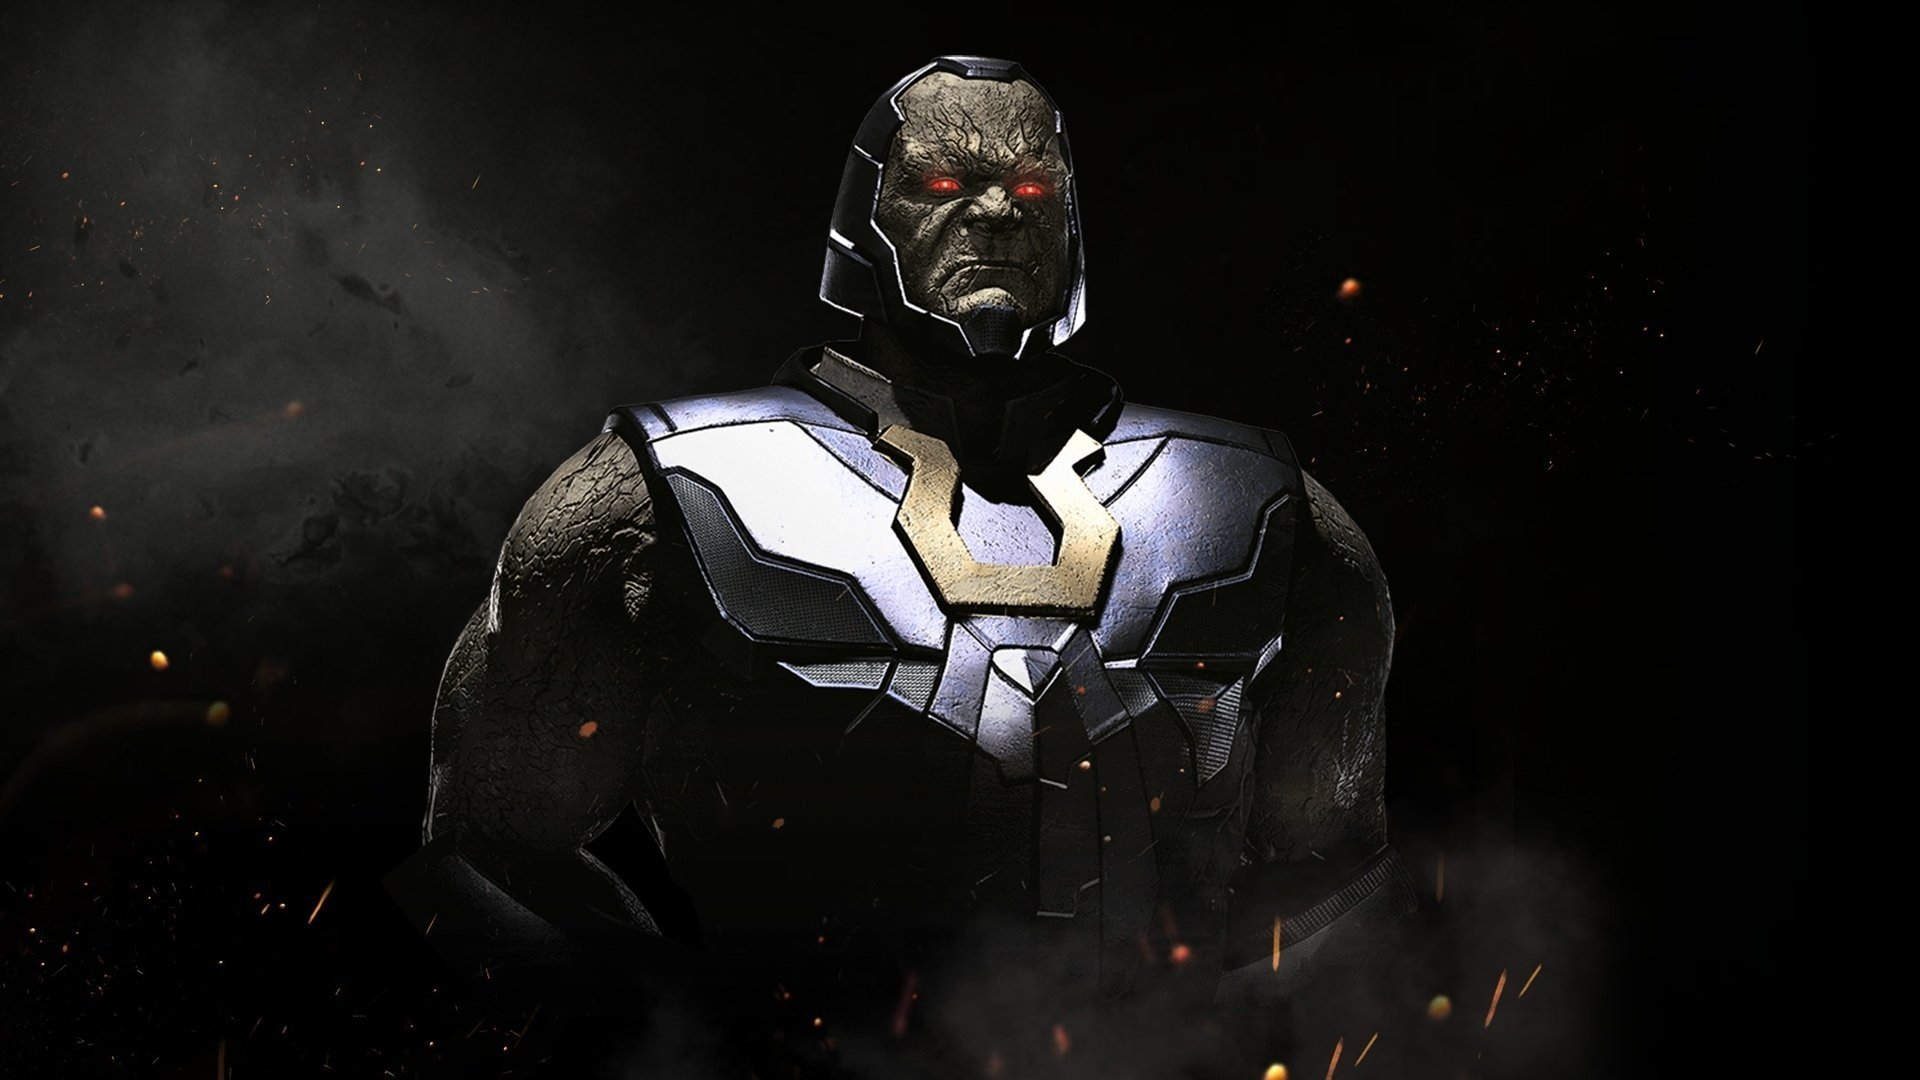 77 Darkseid Hd Wallpapers on WallpaperPlay 1920x1080